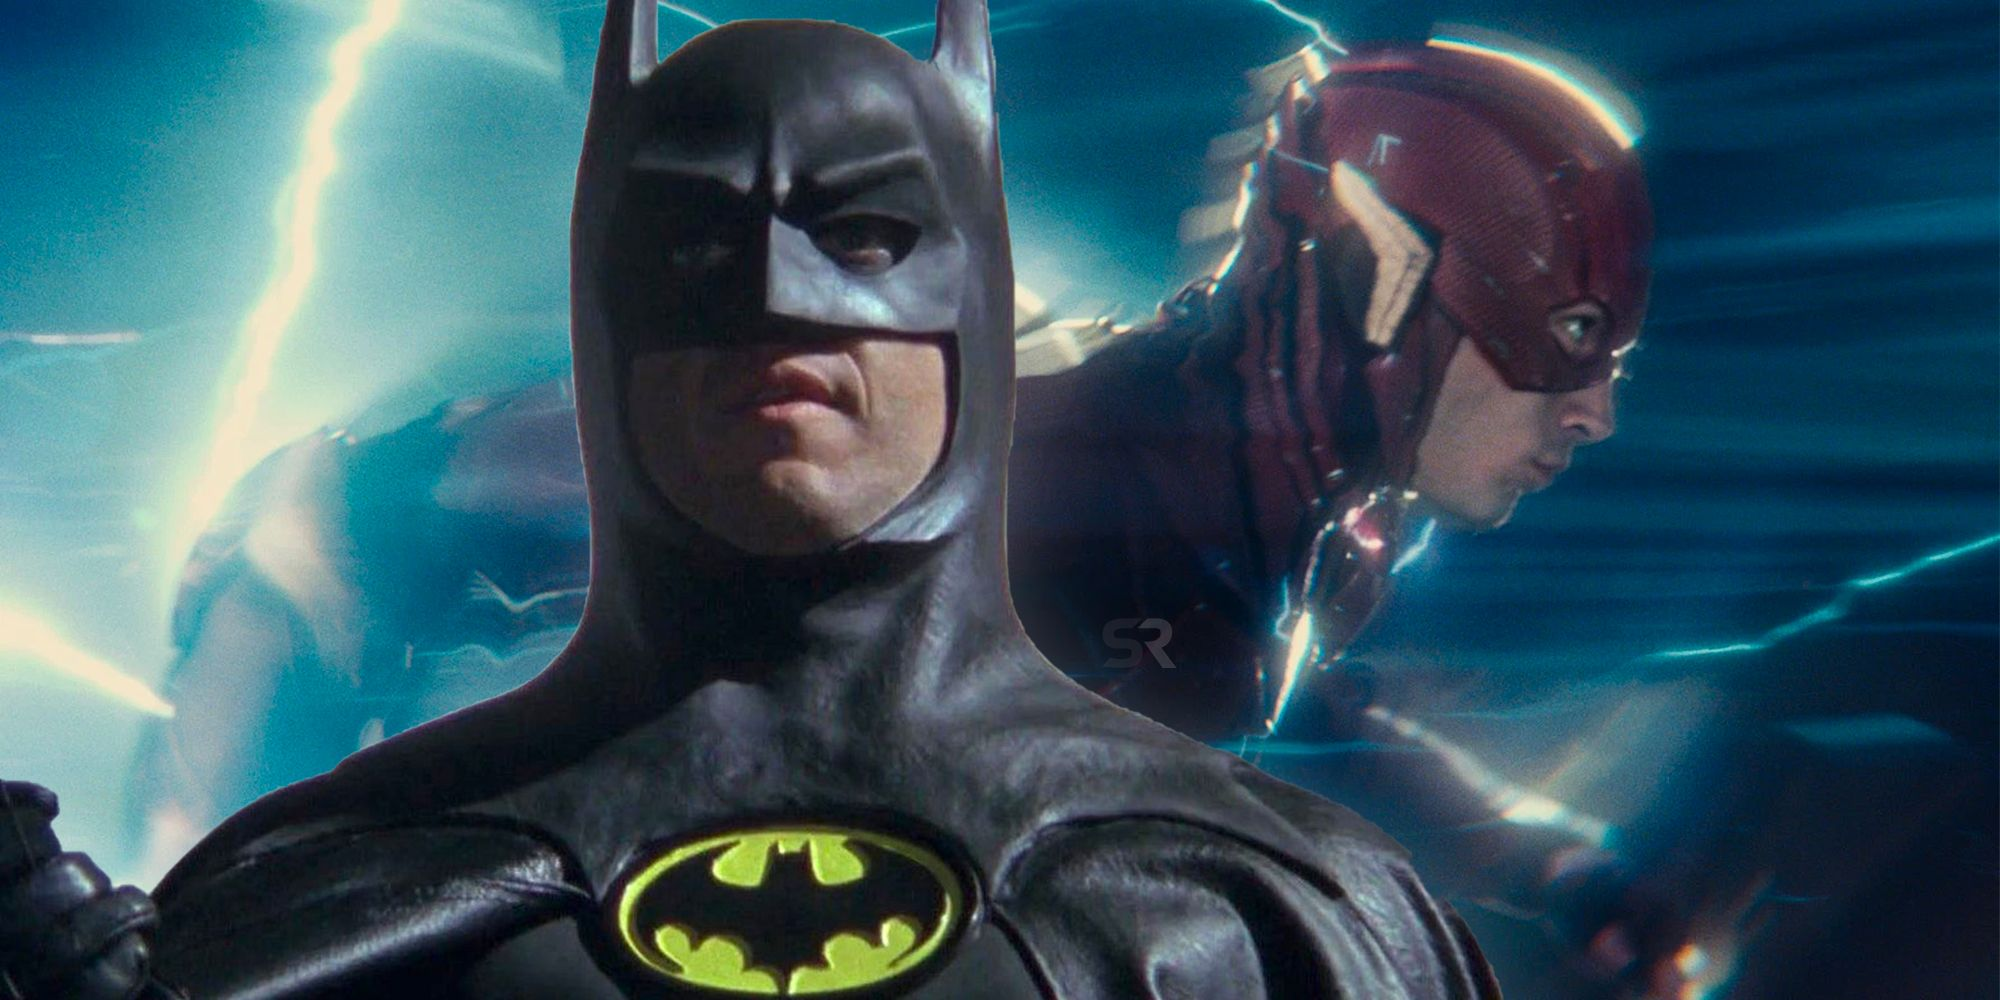 Michael Keaton is NOT Taking Over as the DCEU's Main Batman After The Flash